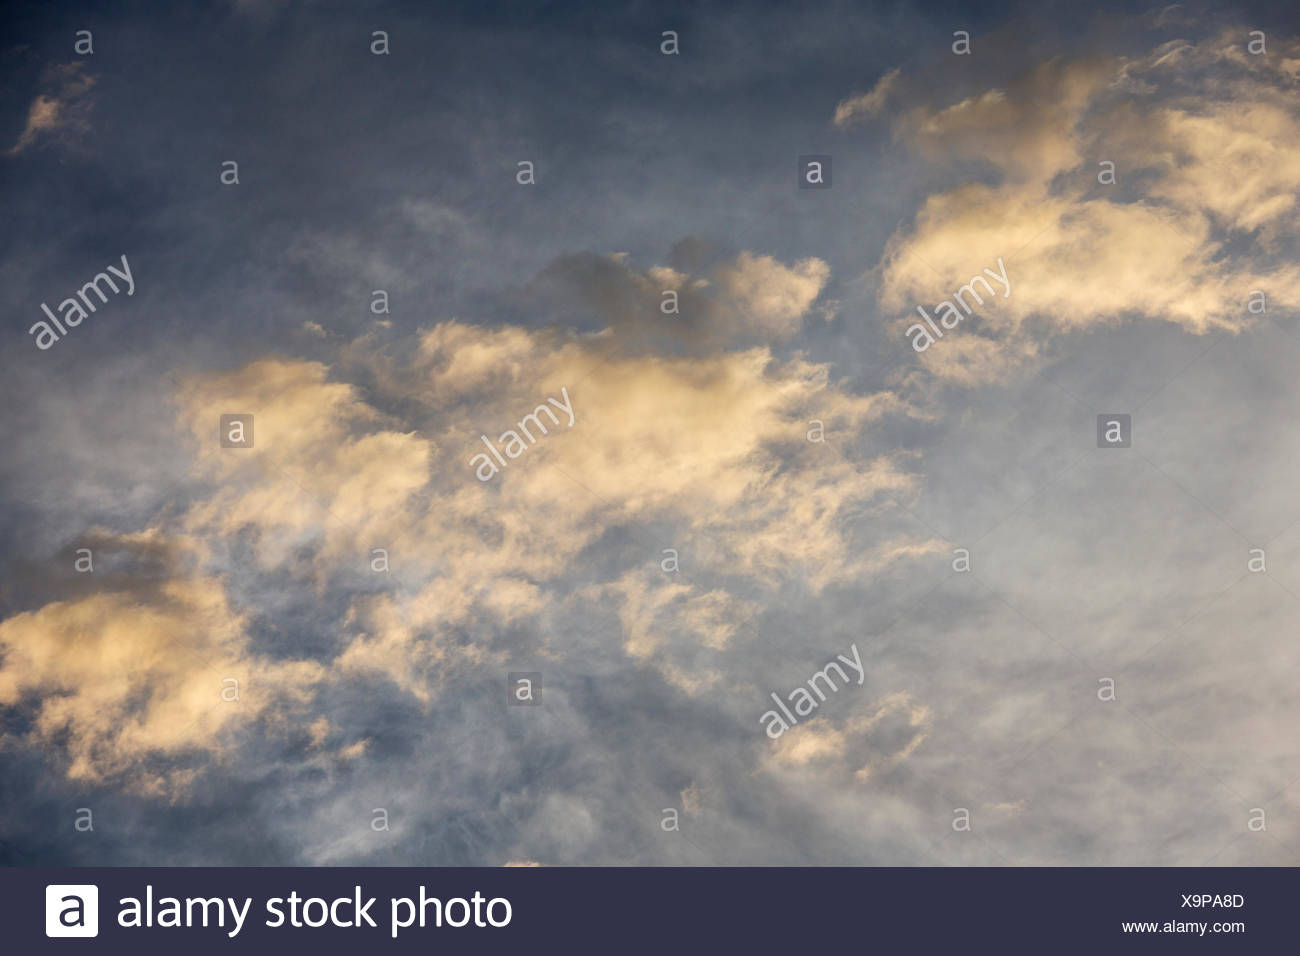 Altocumulus clouds against the high-level cirrostratus clouds, in the evening, Andalusia, Spain - Stock Image